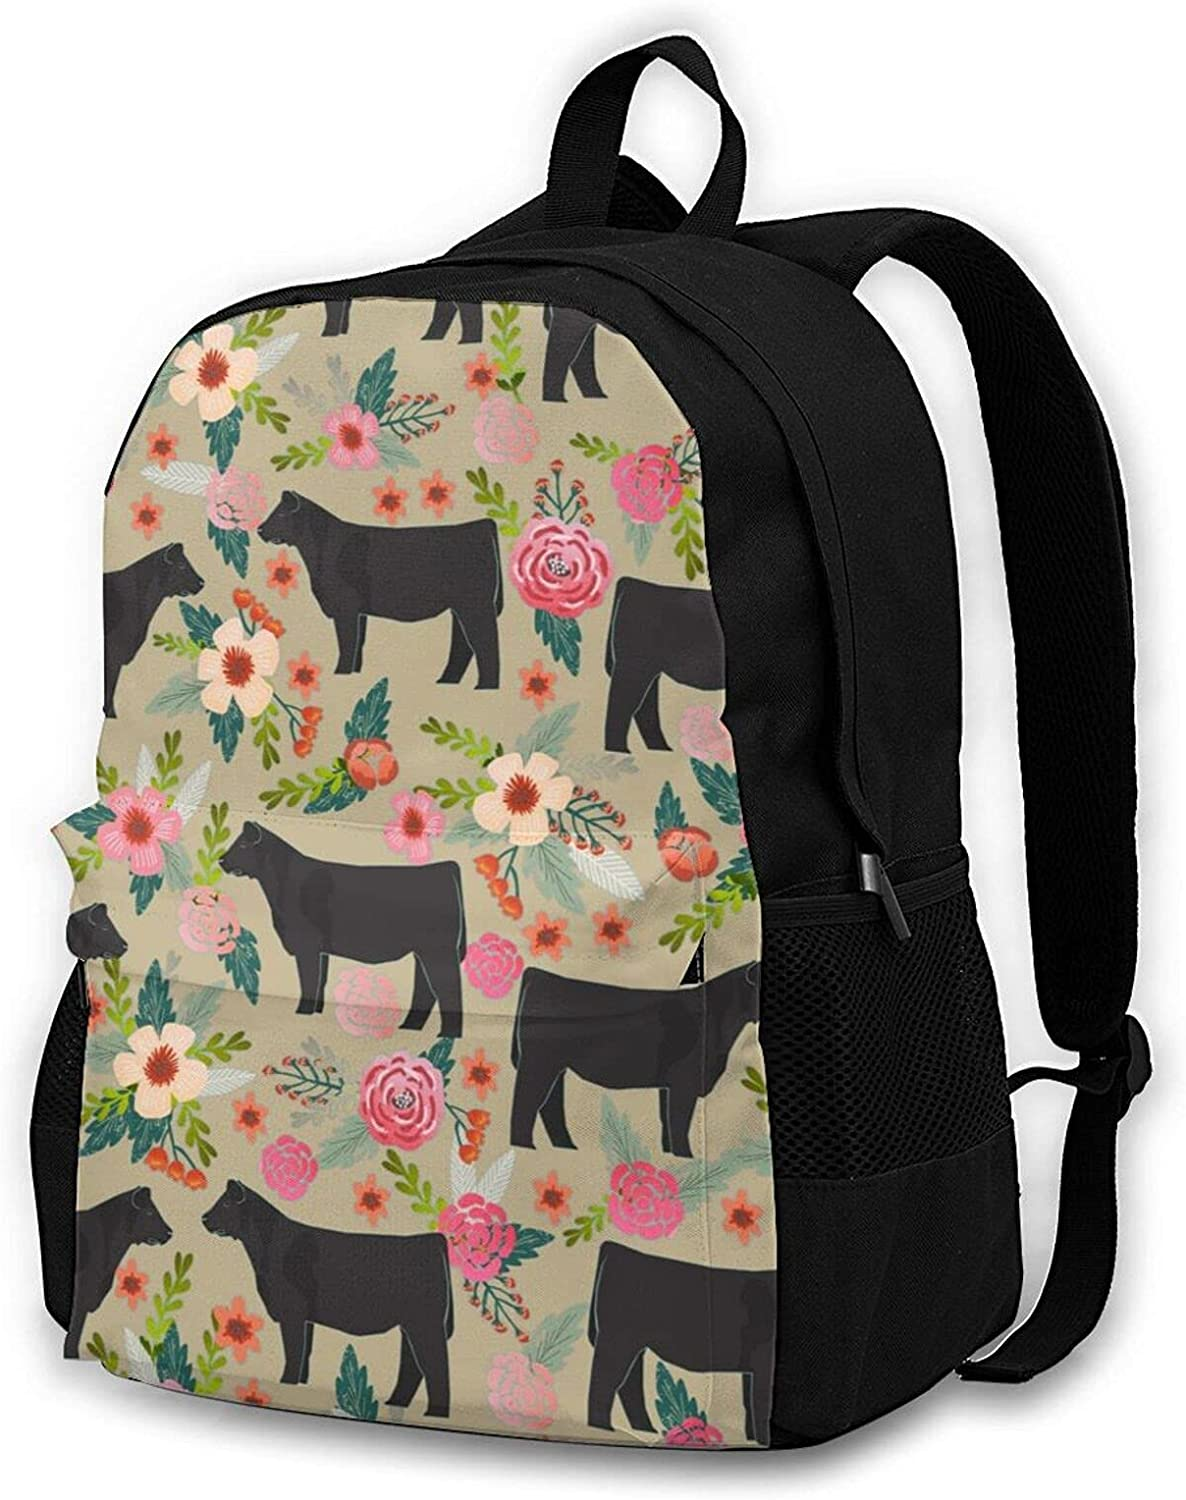 Show Steer 100% quality warranty Cows Farm Chicago Mall Barn Backpack College Design Bookba Florals